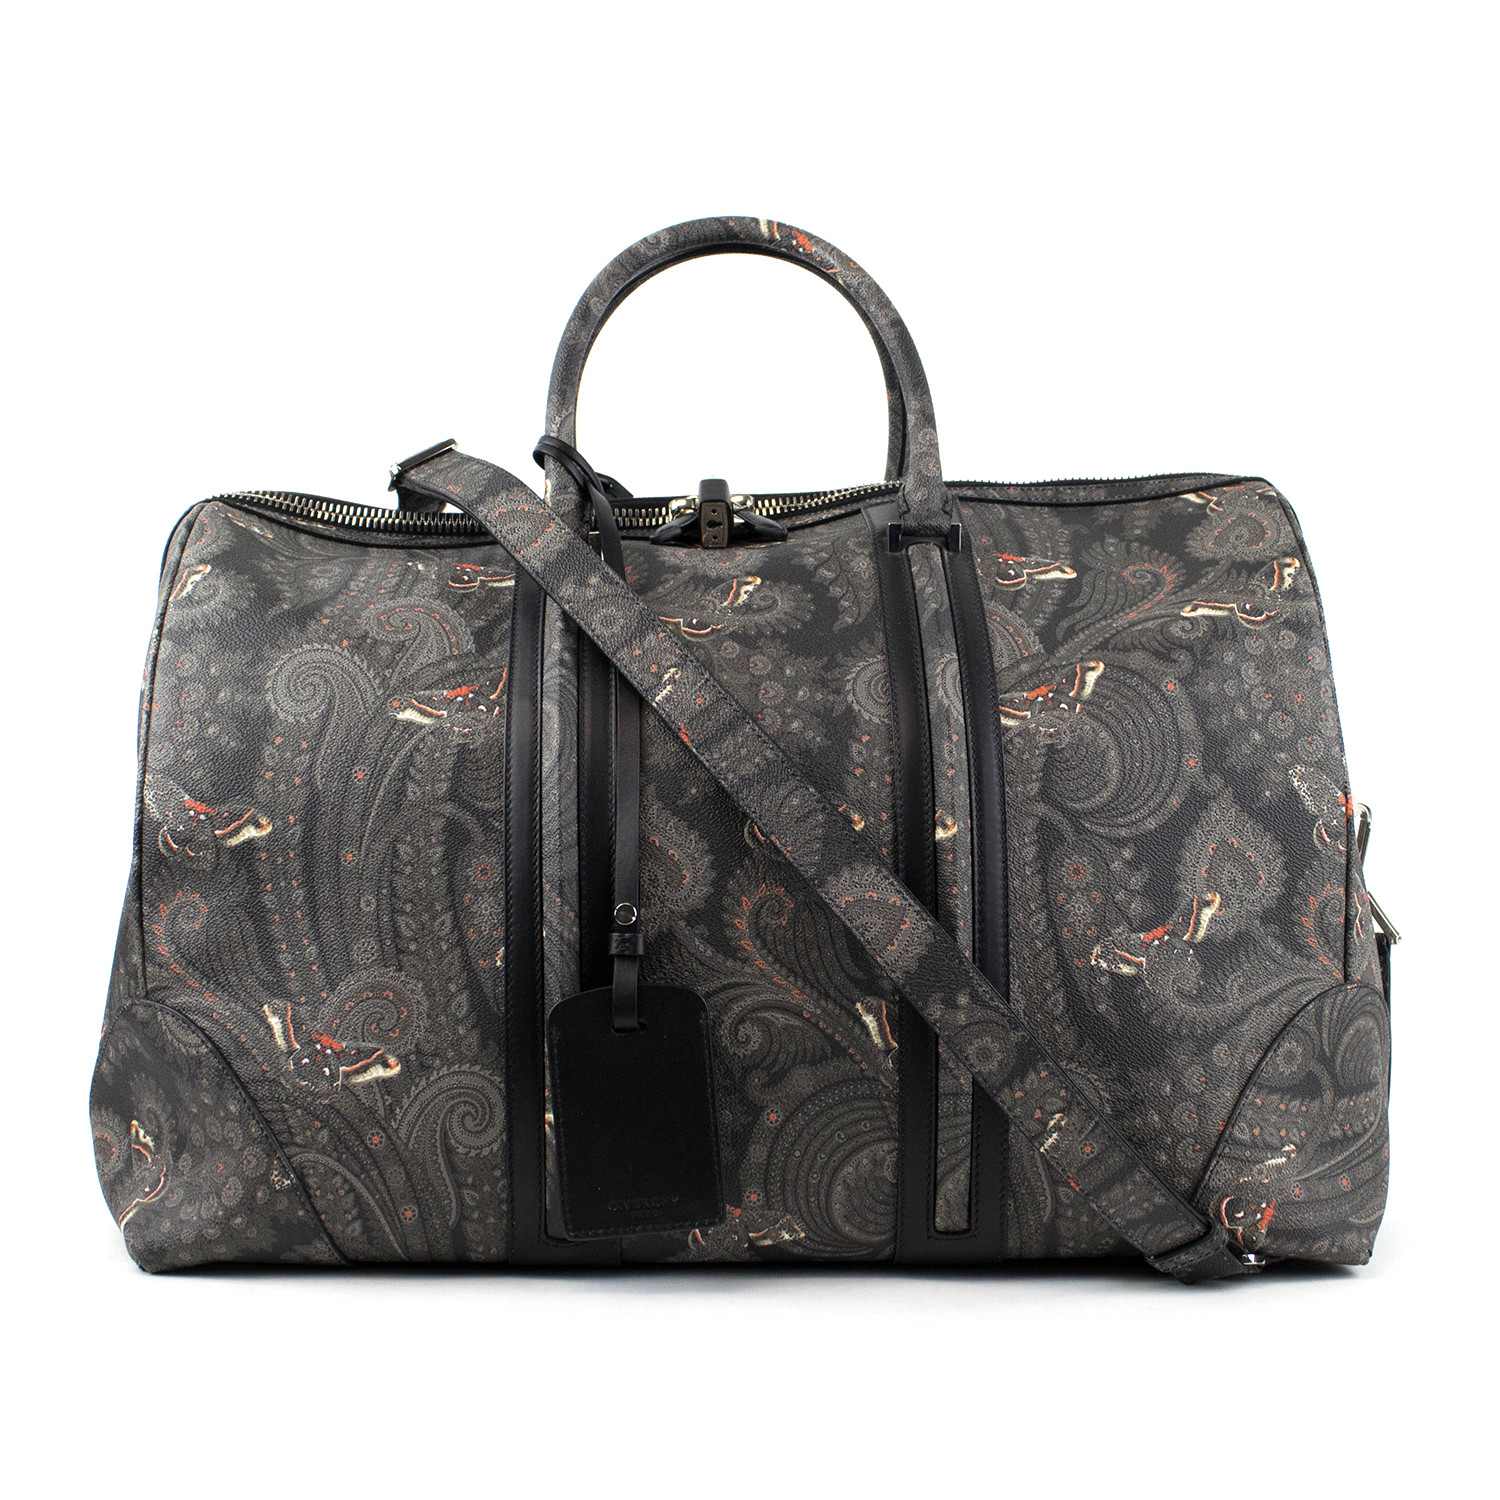 9fd8c5d33e Men's Leather Paisley Weekender Bag // Gray + Black - Givenchy ...